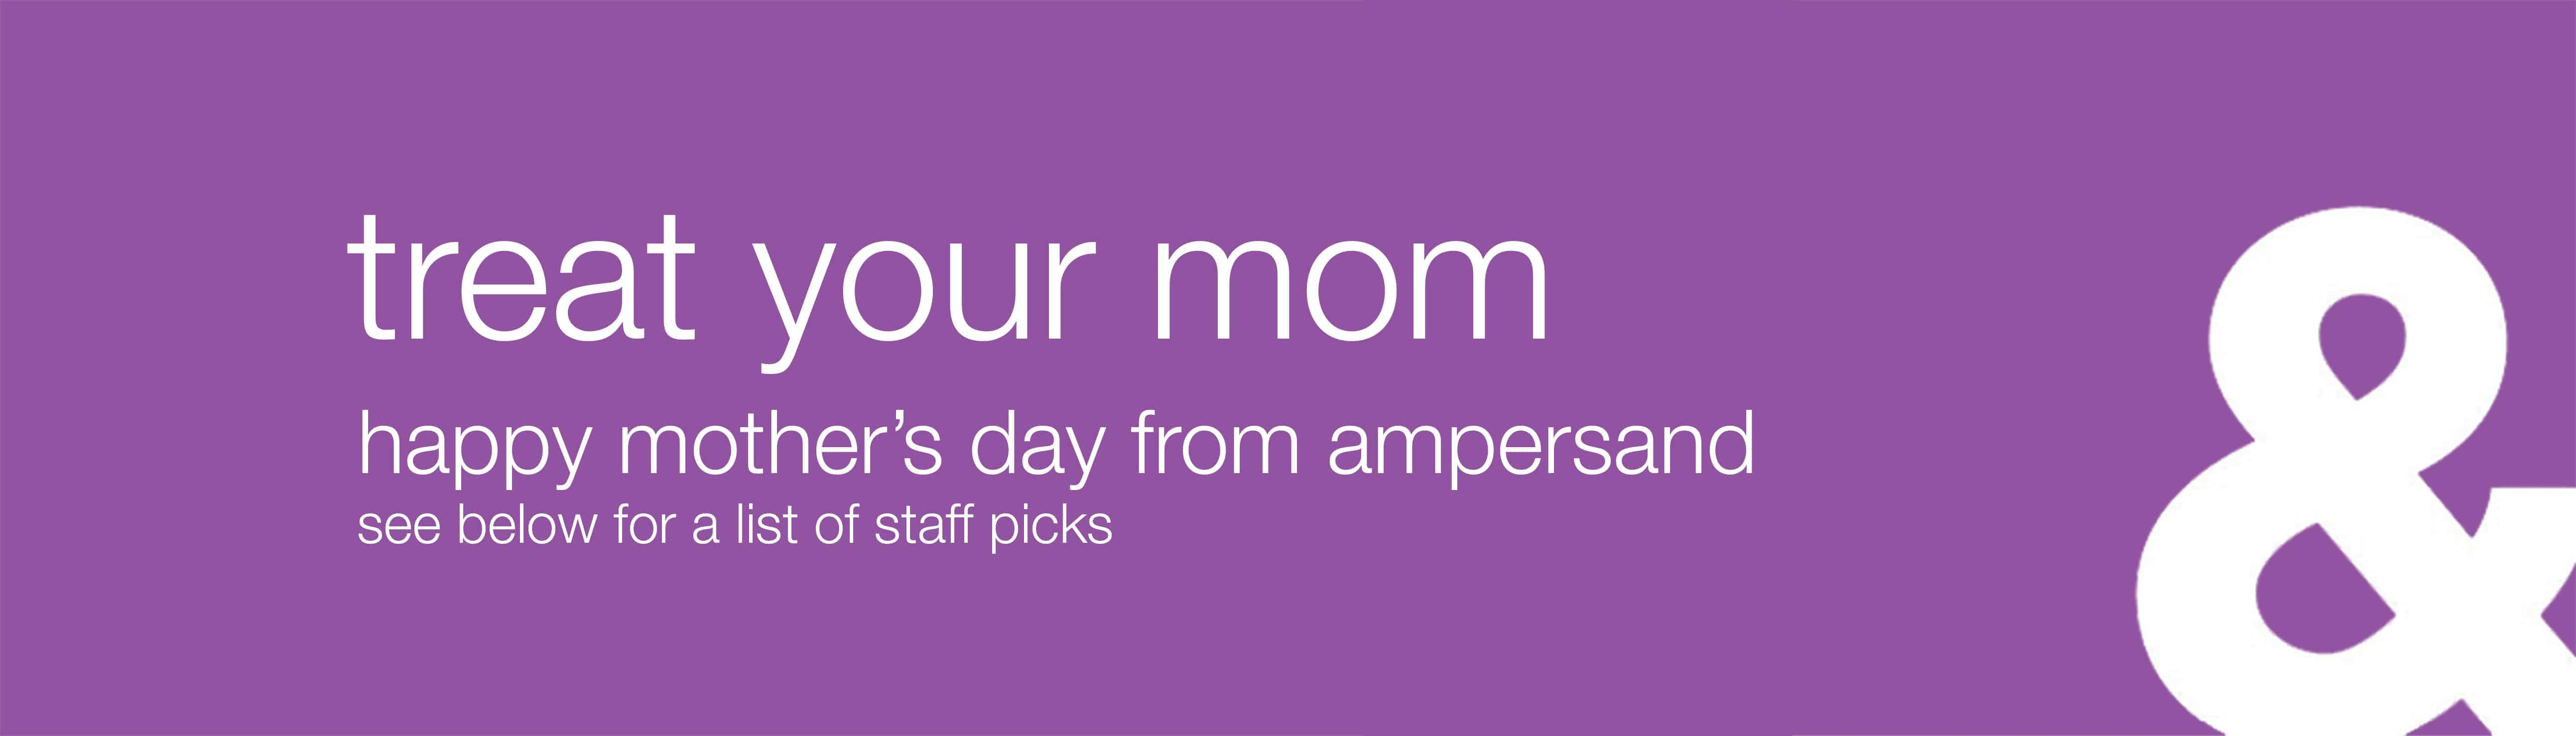 5. May - Mother's Day